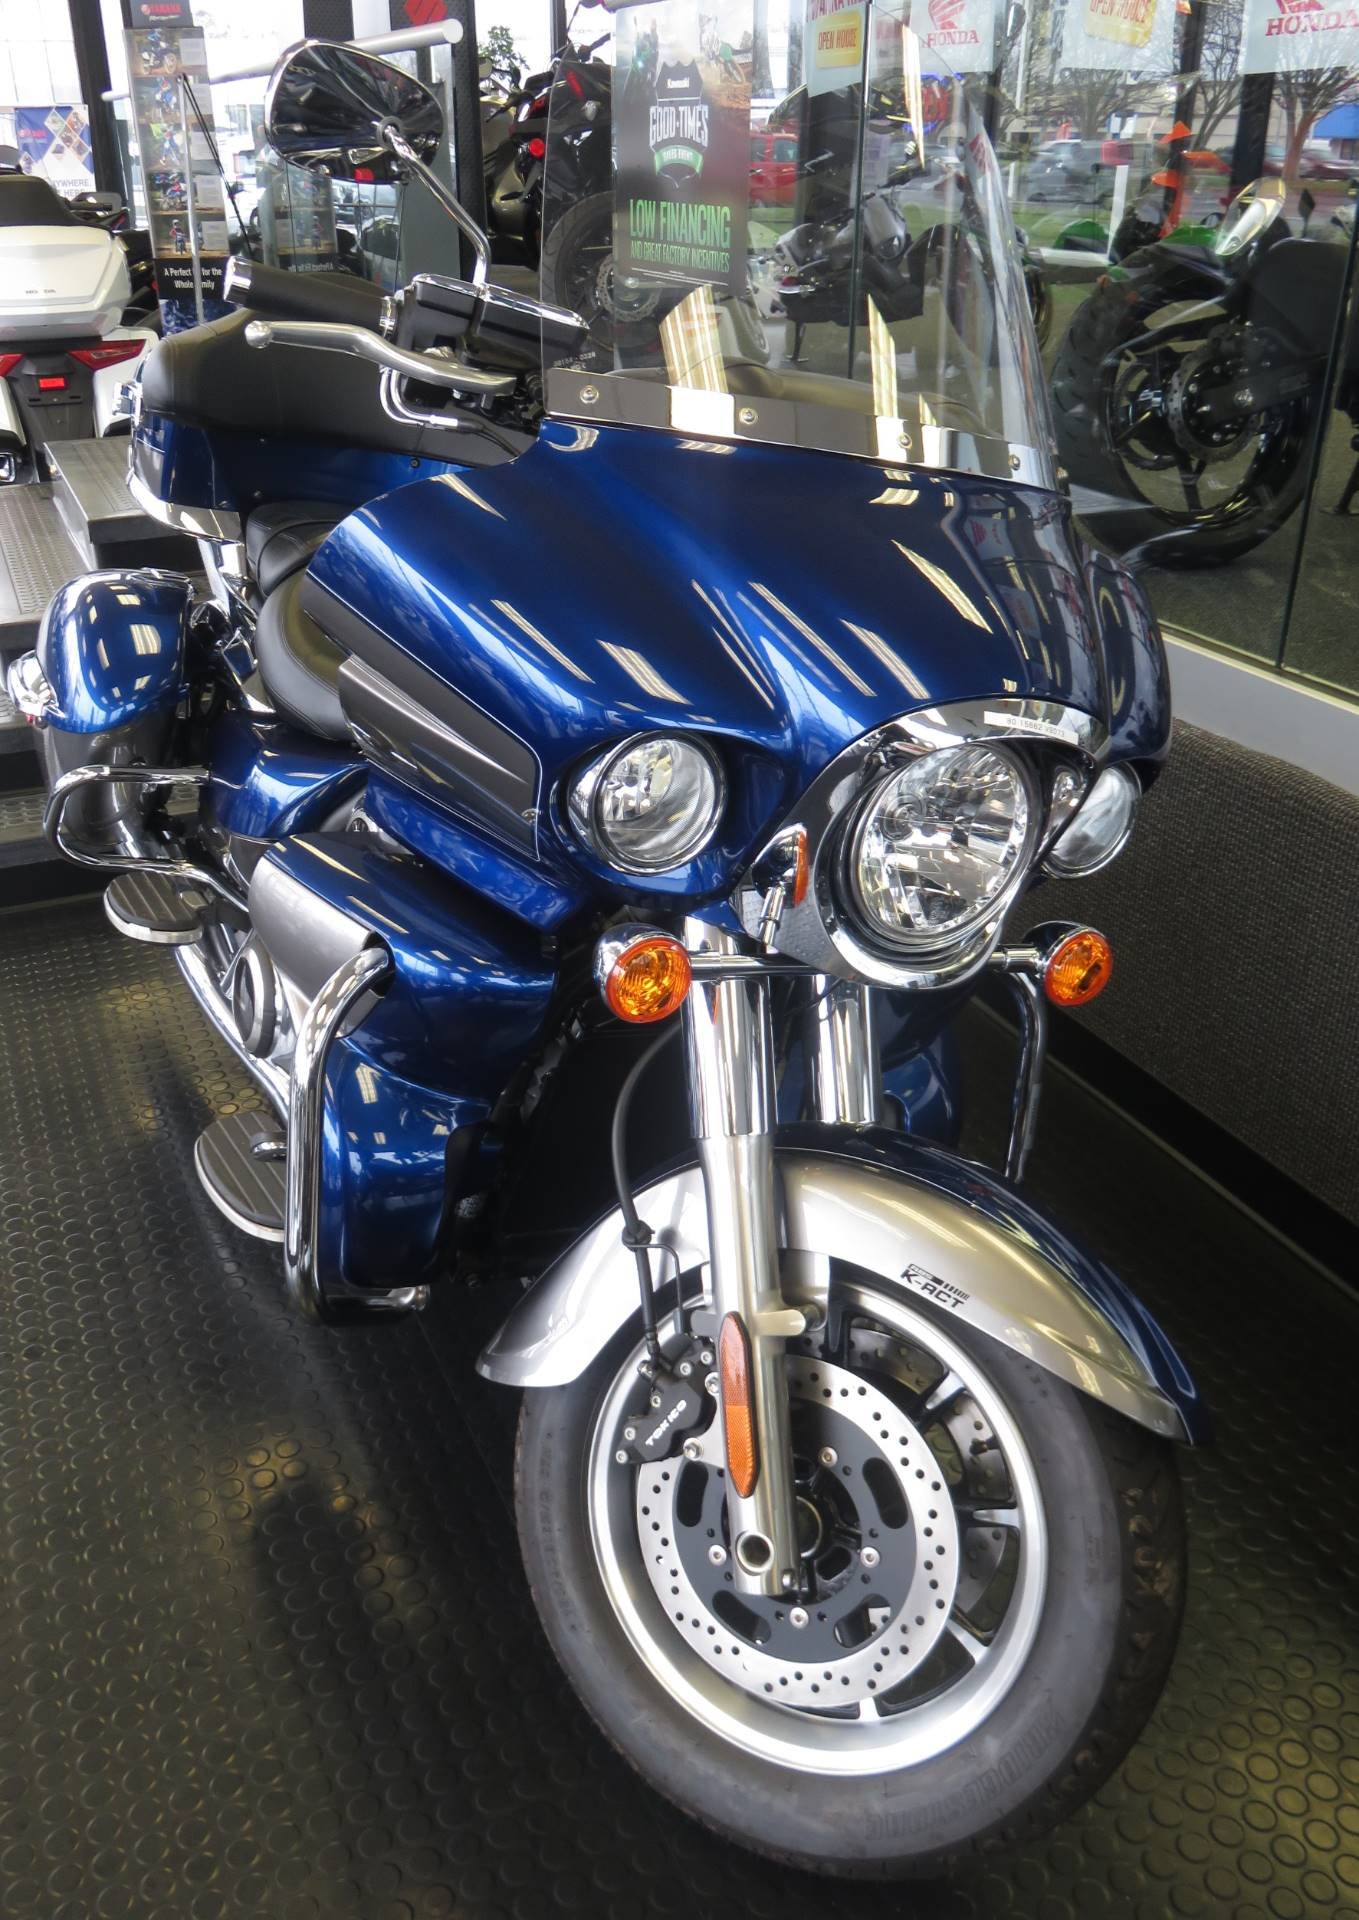 2019 Kawasaki Vulcan 1700 Voyager ABS in Virginia Beach, Virginia - Photo 2